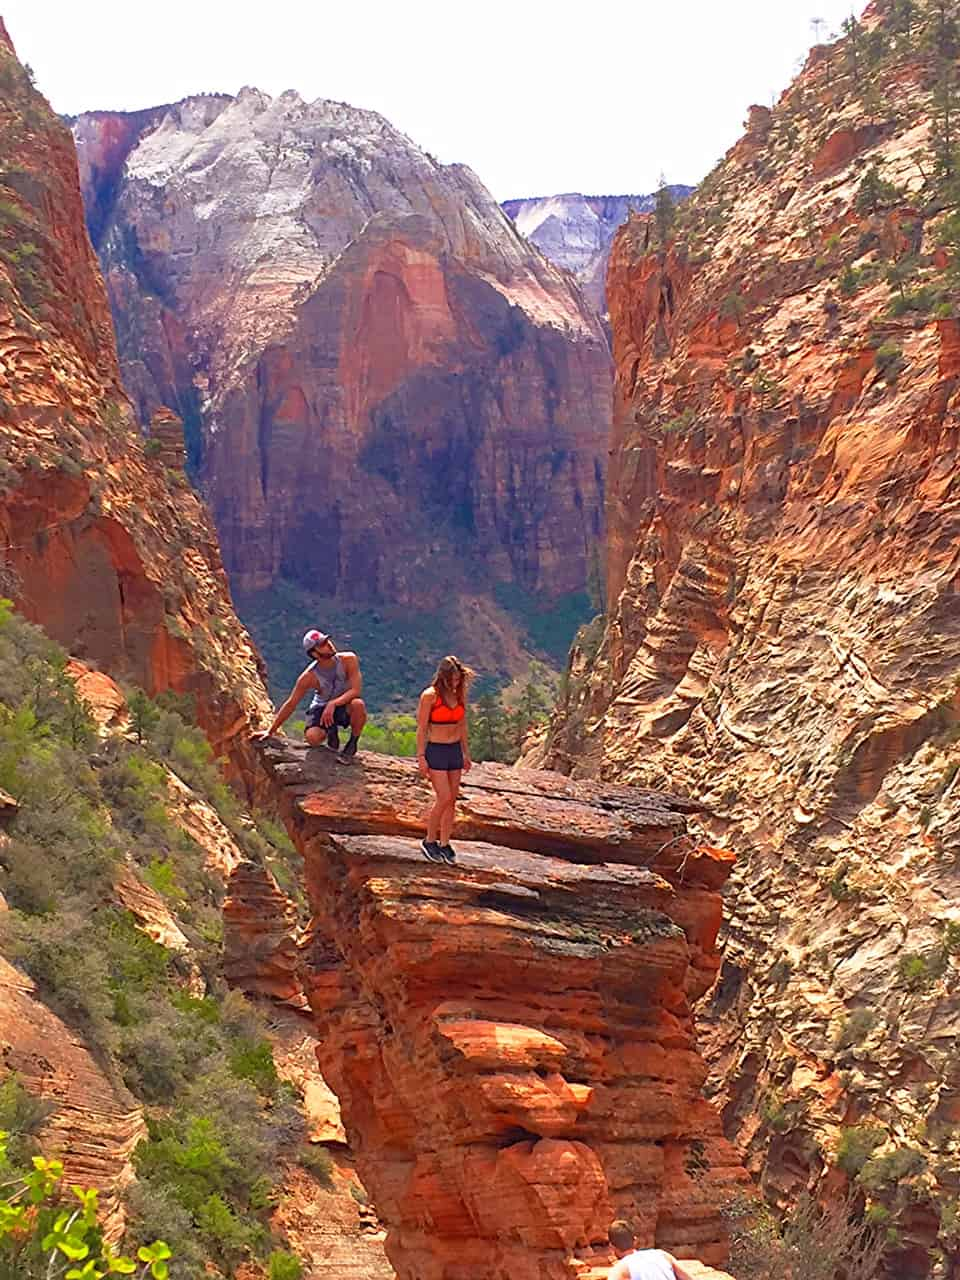 0331bcfb1b6 4 Day Itinerary for Zion National Park | Hiking Angel's Landing |  Winetraveler.com. Some brave souls climbed onto this rock structure not far  from the ...